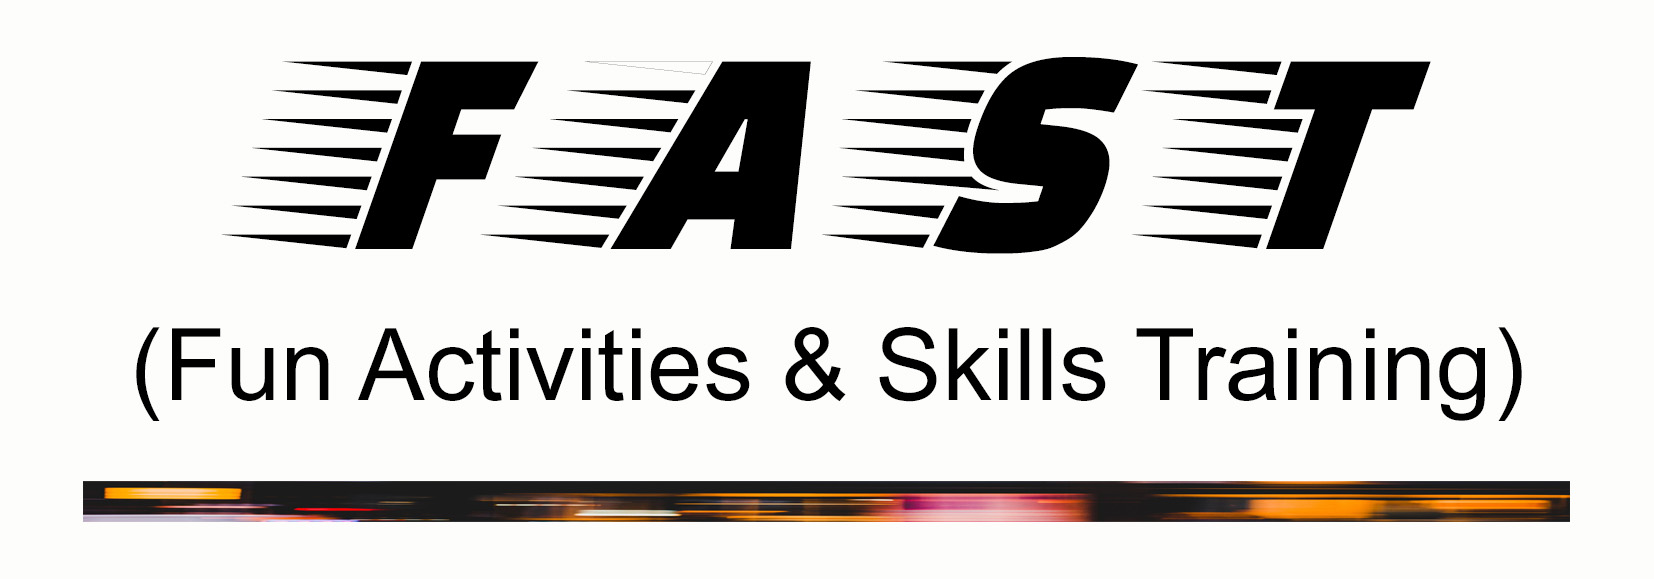 FAST Fun Activities & Skills Training Logo